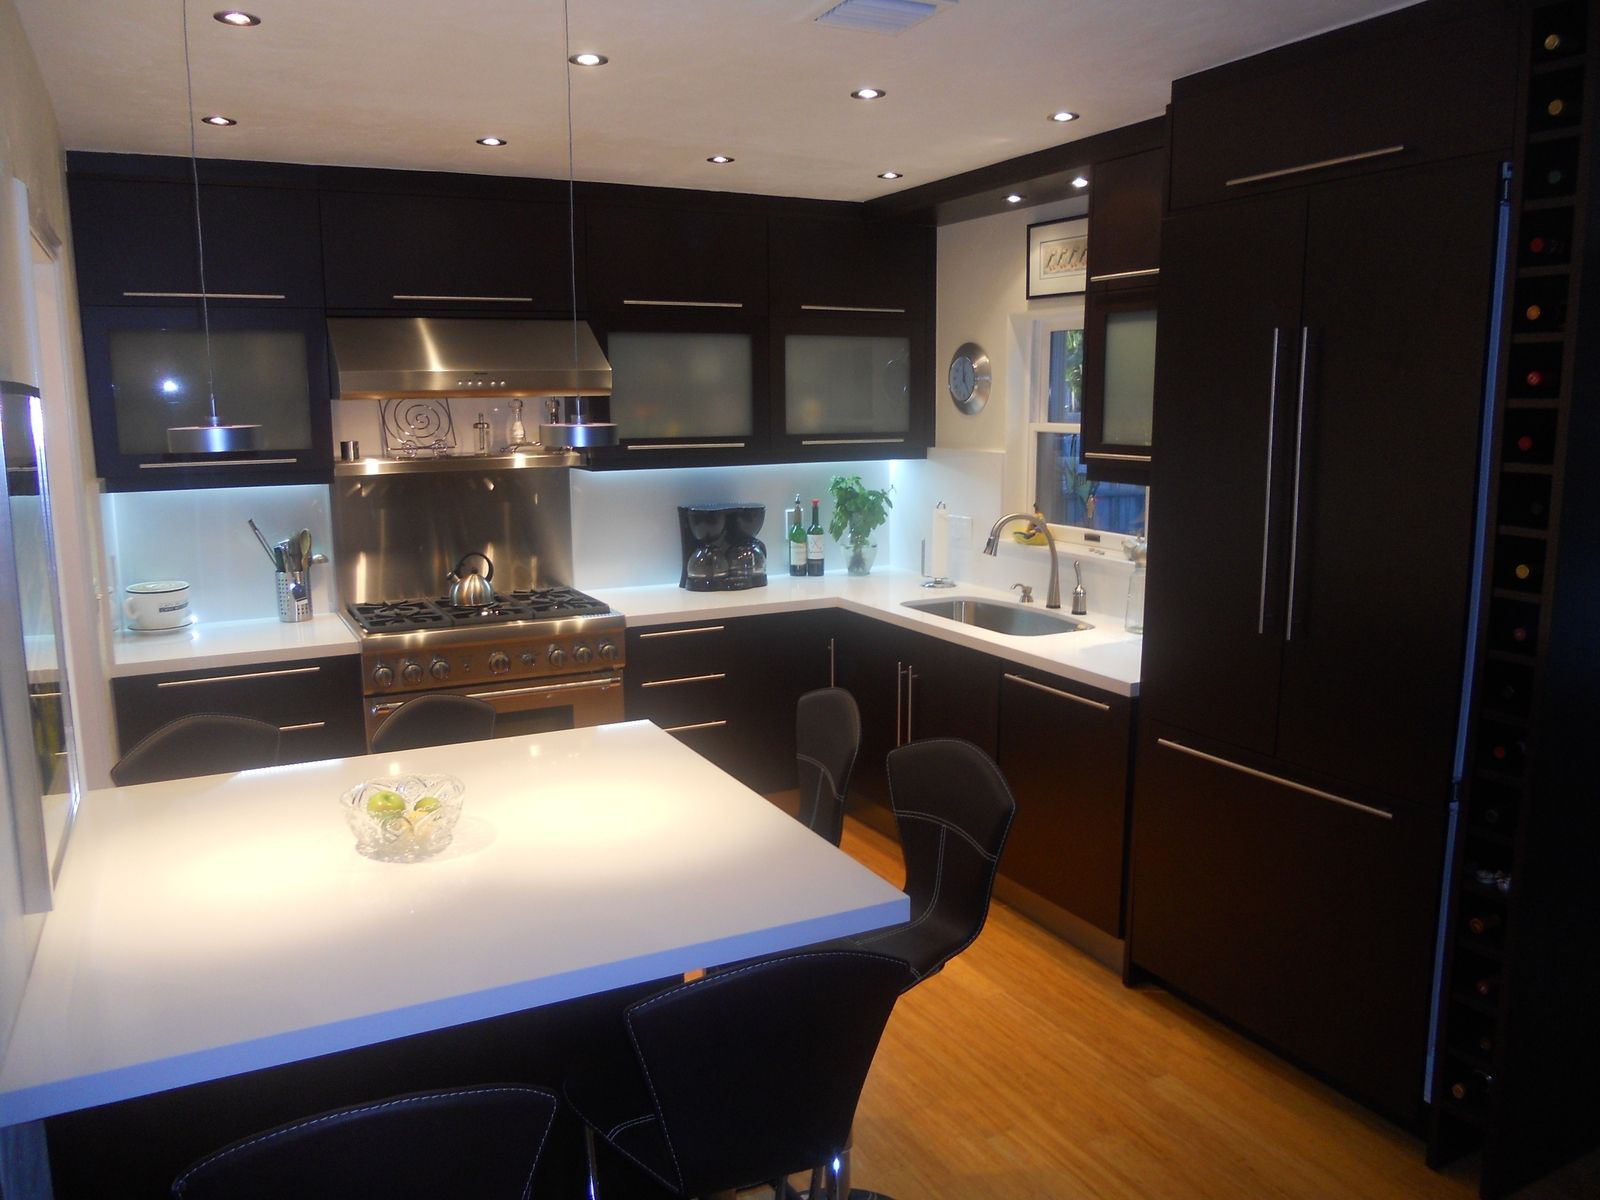 Astounding Hand Made Complete Kitchen Remodeling By Miami Home Design Download Free Architecture Designs Pendunizatbritishbridgeorg